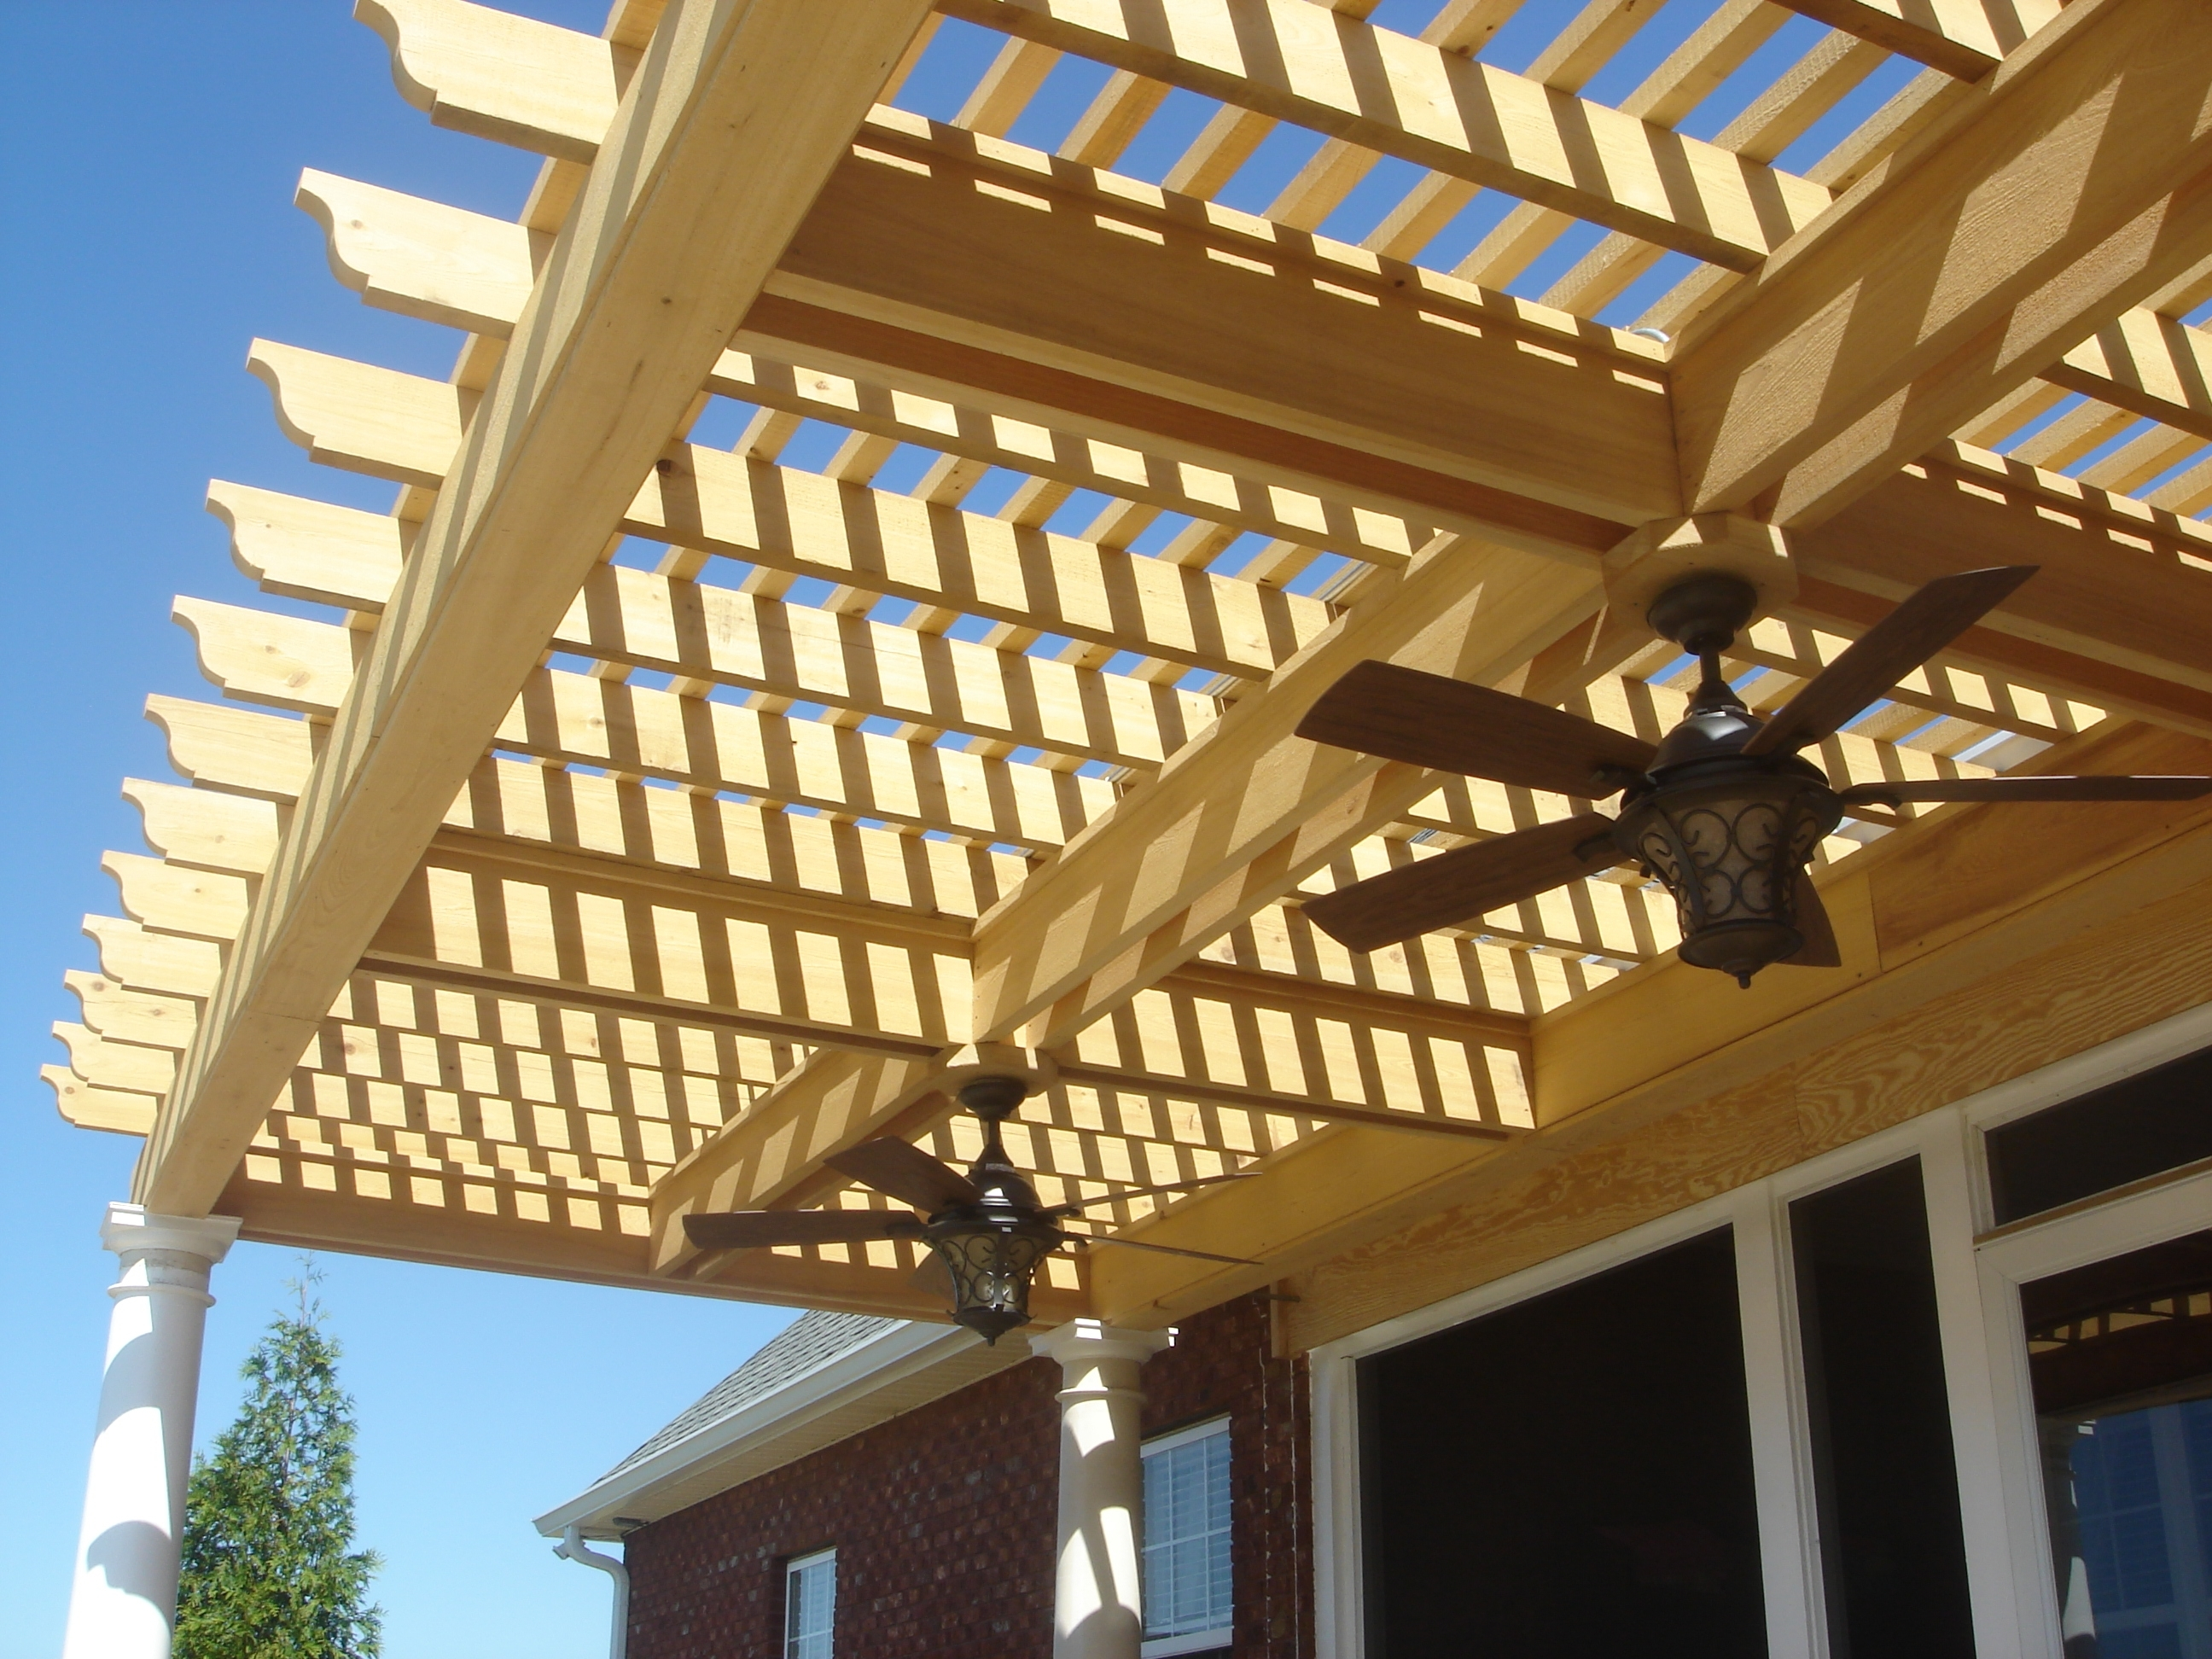 How To Add Lights To A Deck, Screened Porch Or Pergolaarchadeck Regarding Famous Outdoor Ceiling Fans For Screened Porches (View 5 of 20)